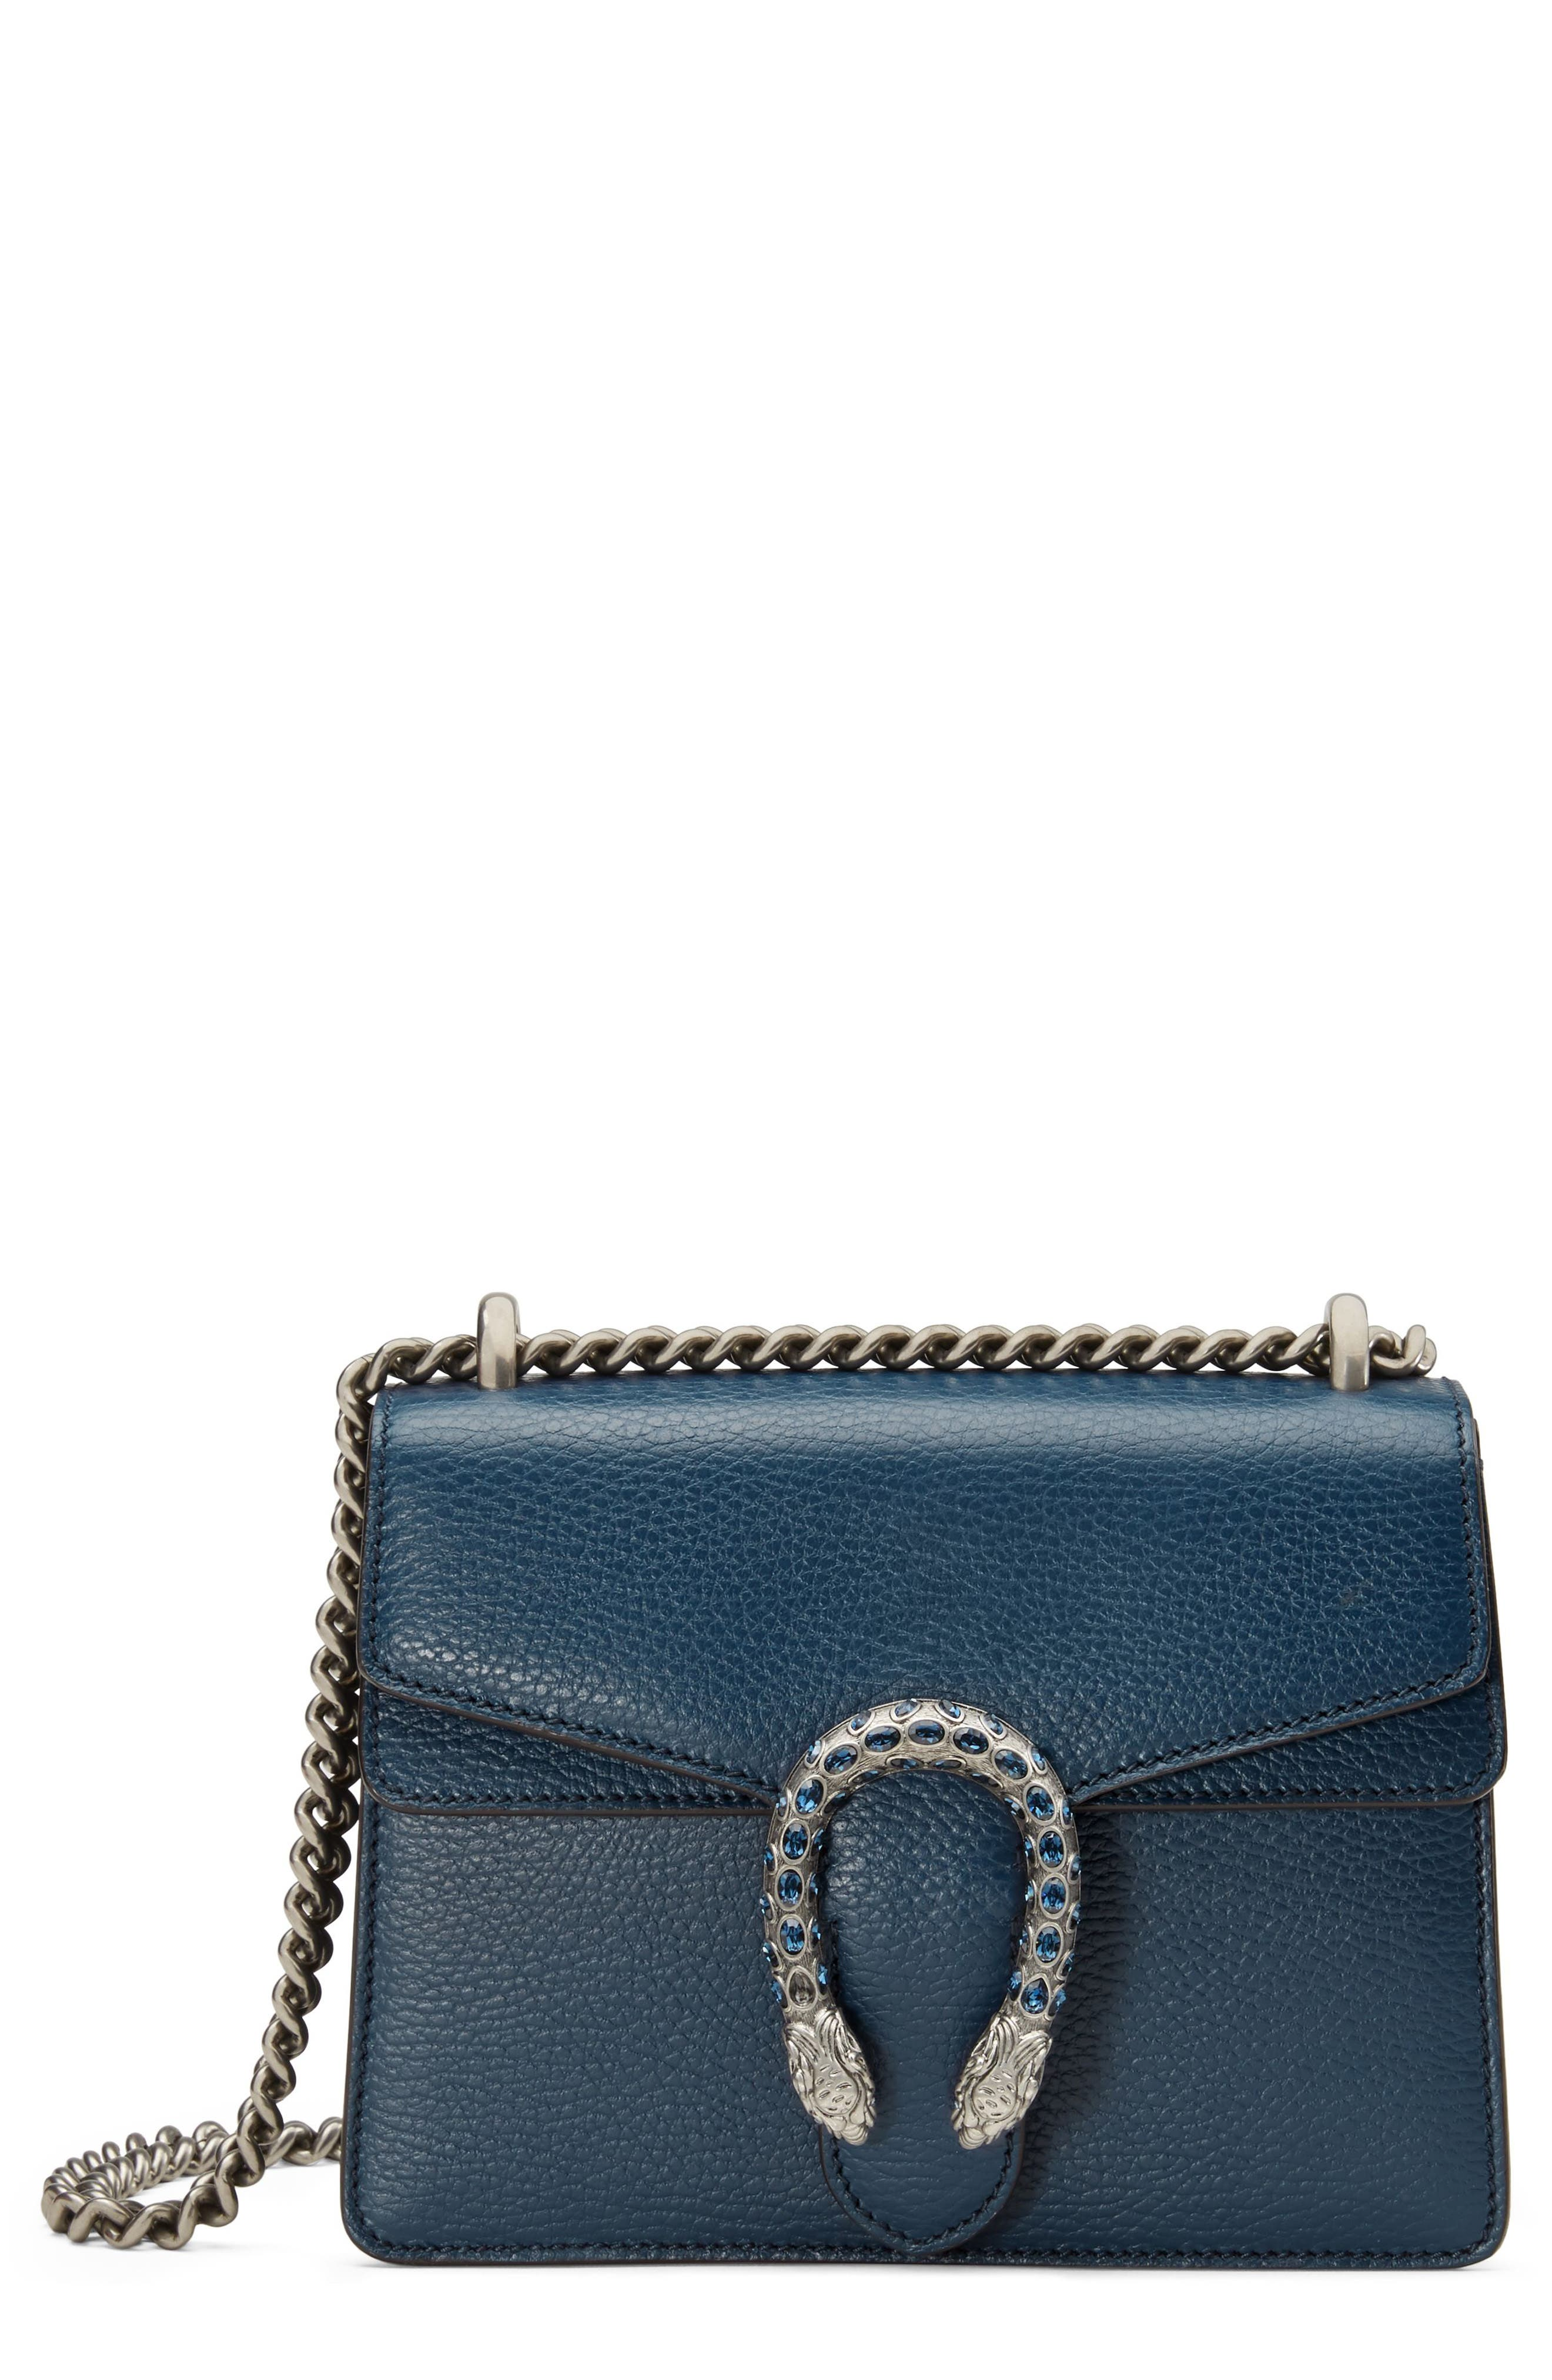 Mini Dionysus Leather Shoulder Bag,                             Main thumbnail 1, color,                             BLU AGATA/ MONTANA